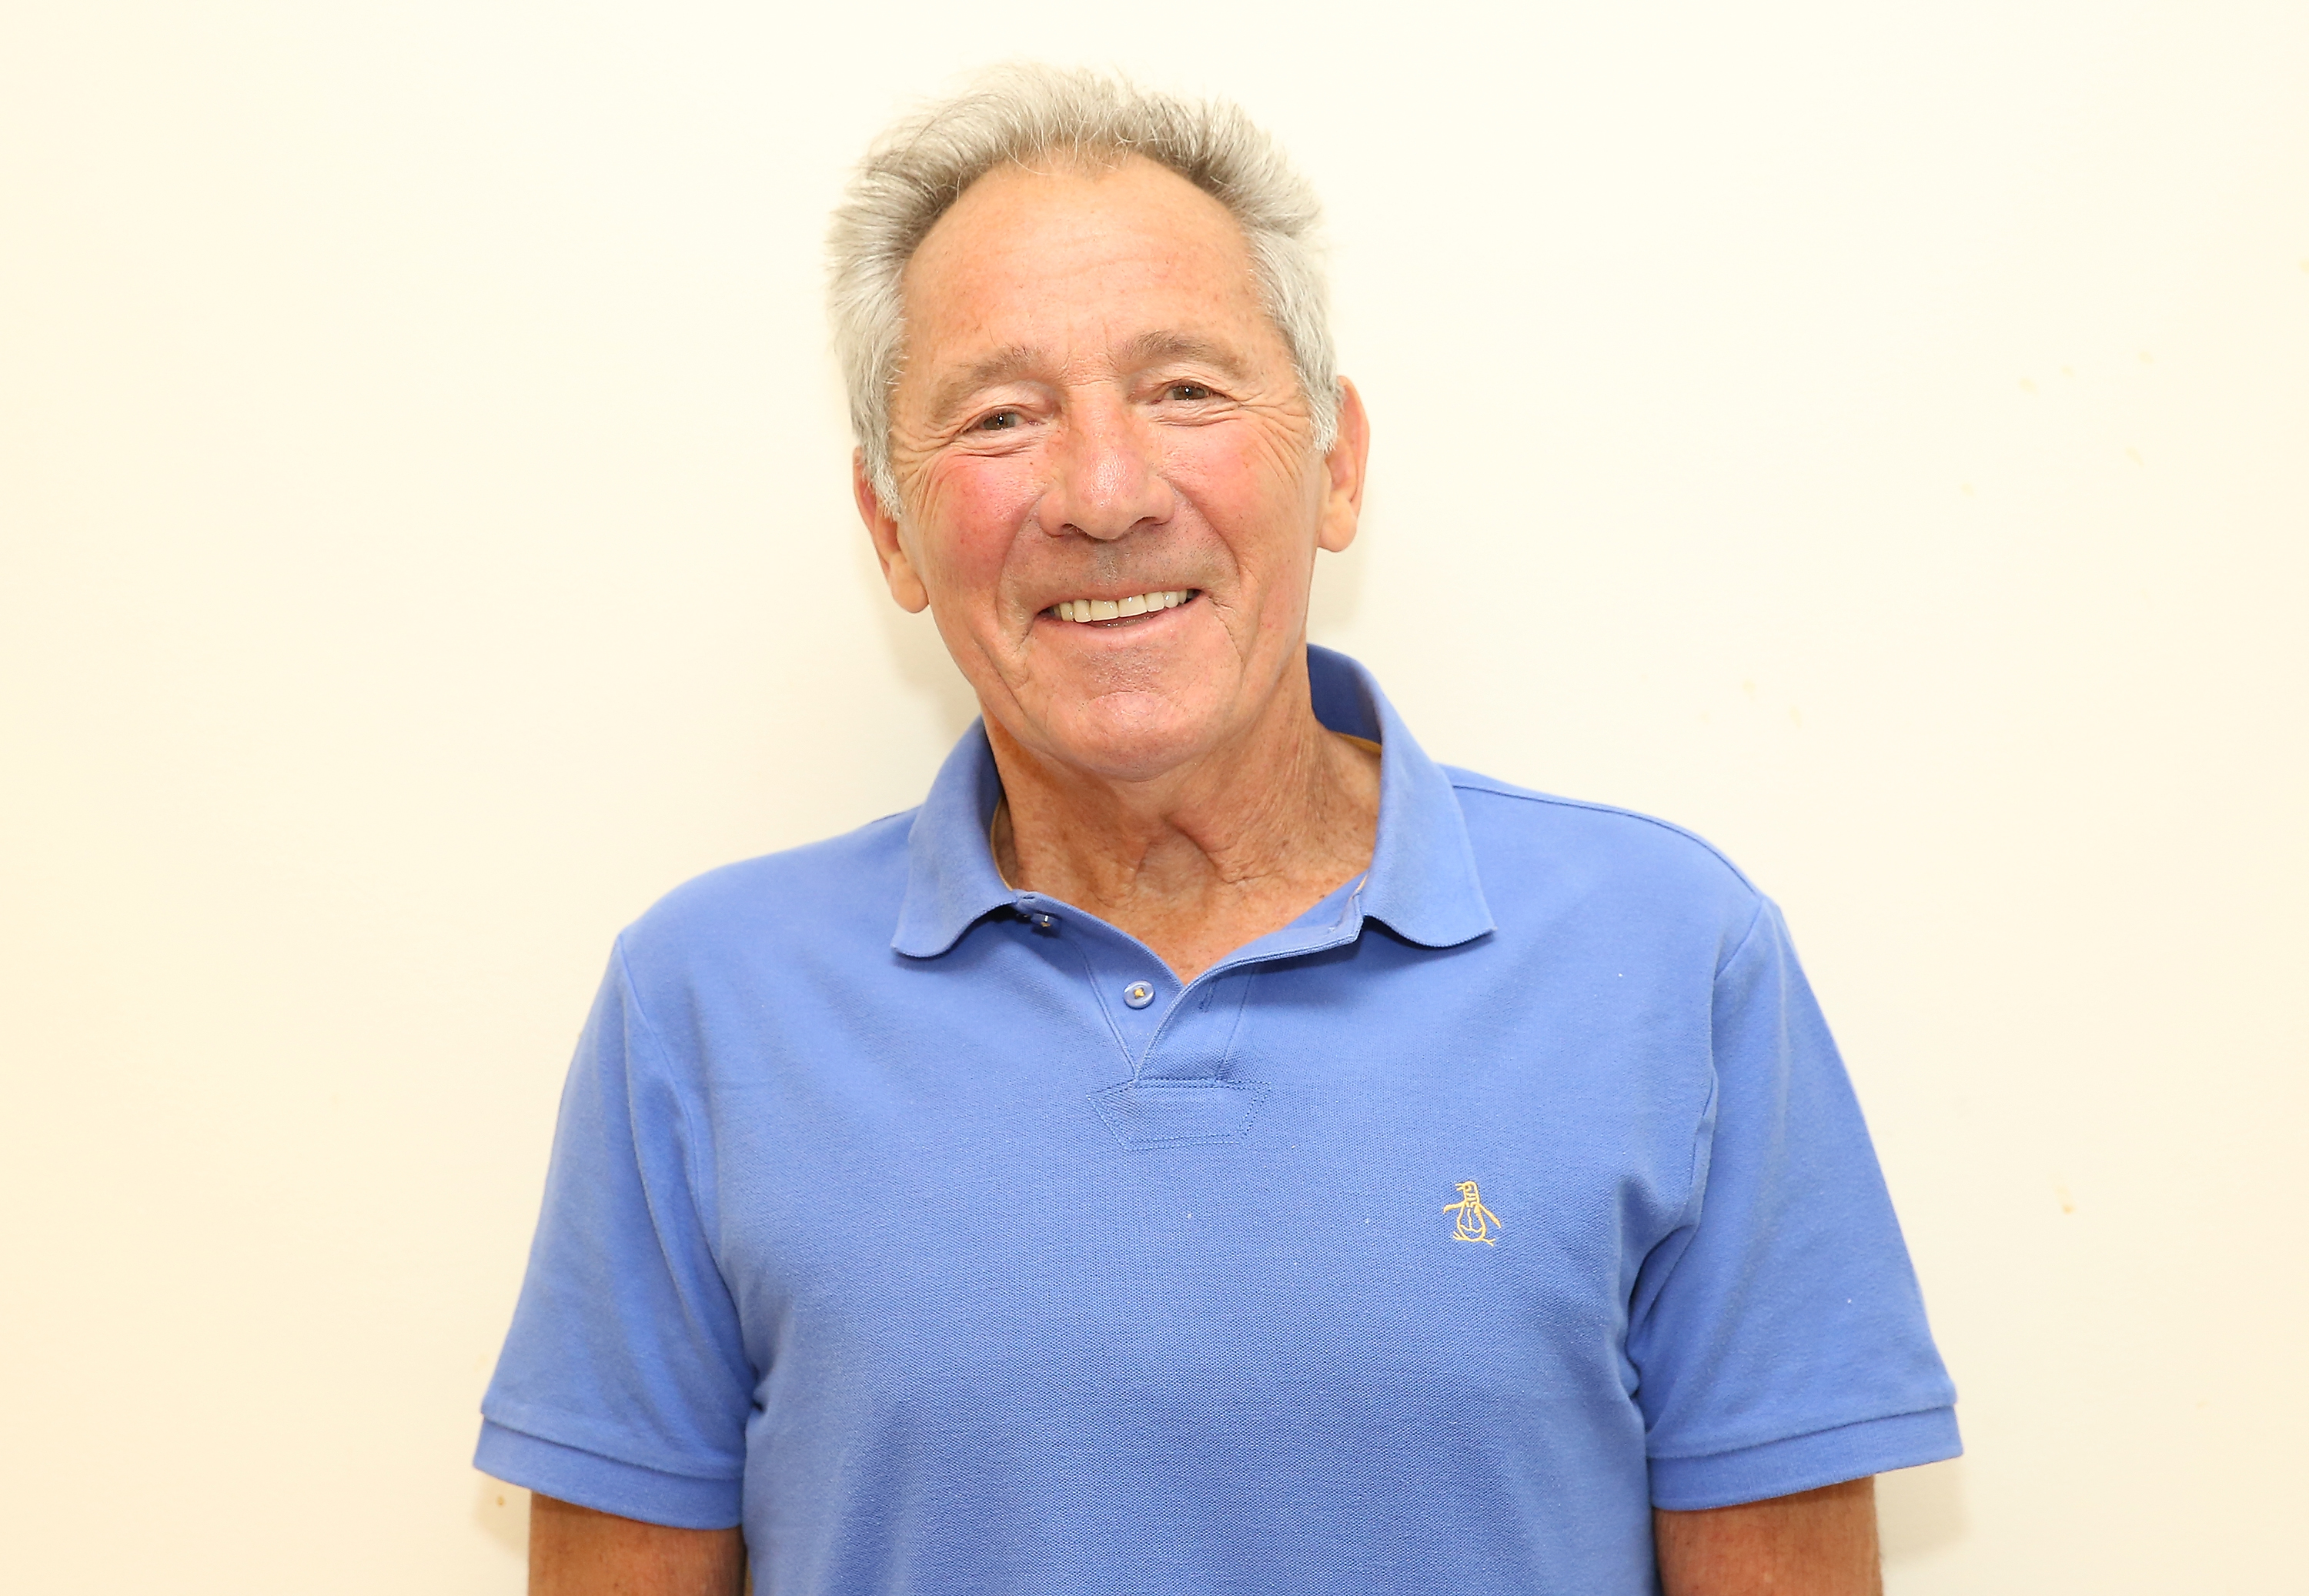 Playwright Israel Horovitz attends the  Out Of The Mouths Of Babes  Off-Broadway Photo Opportunity at MTC Rehearsal Studios on May 12, 2016 in New York City.